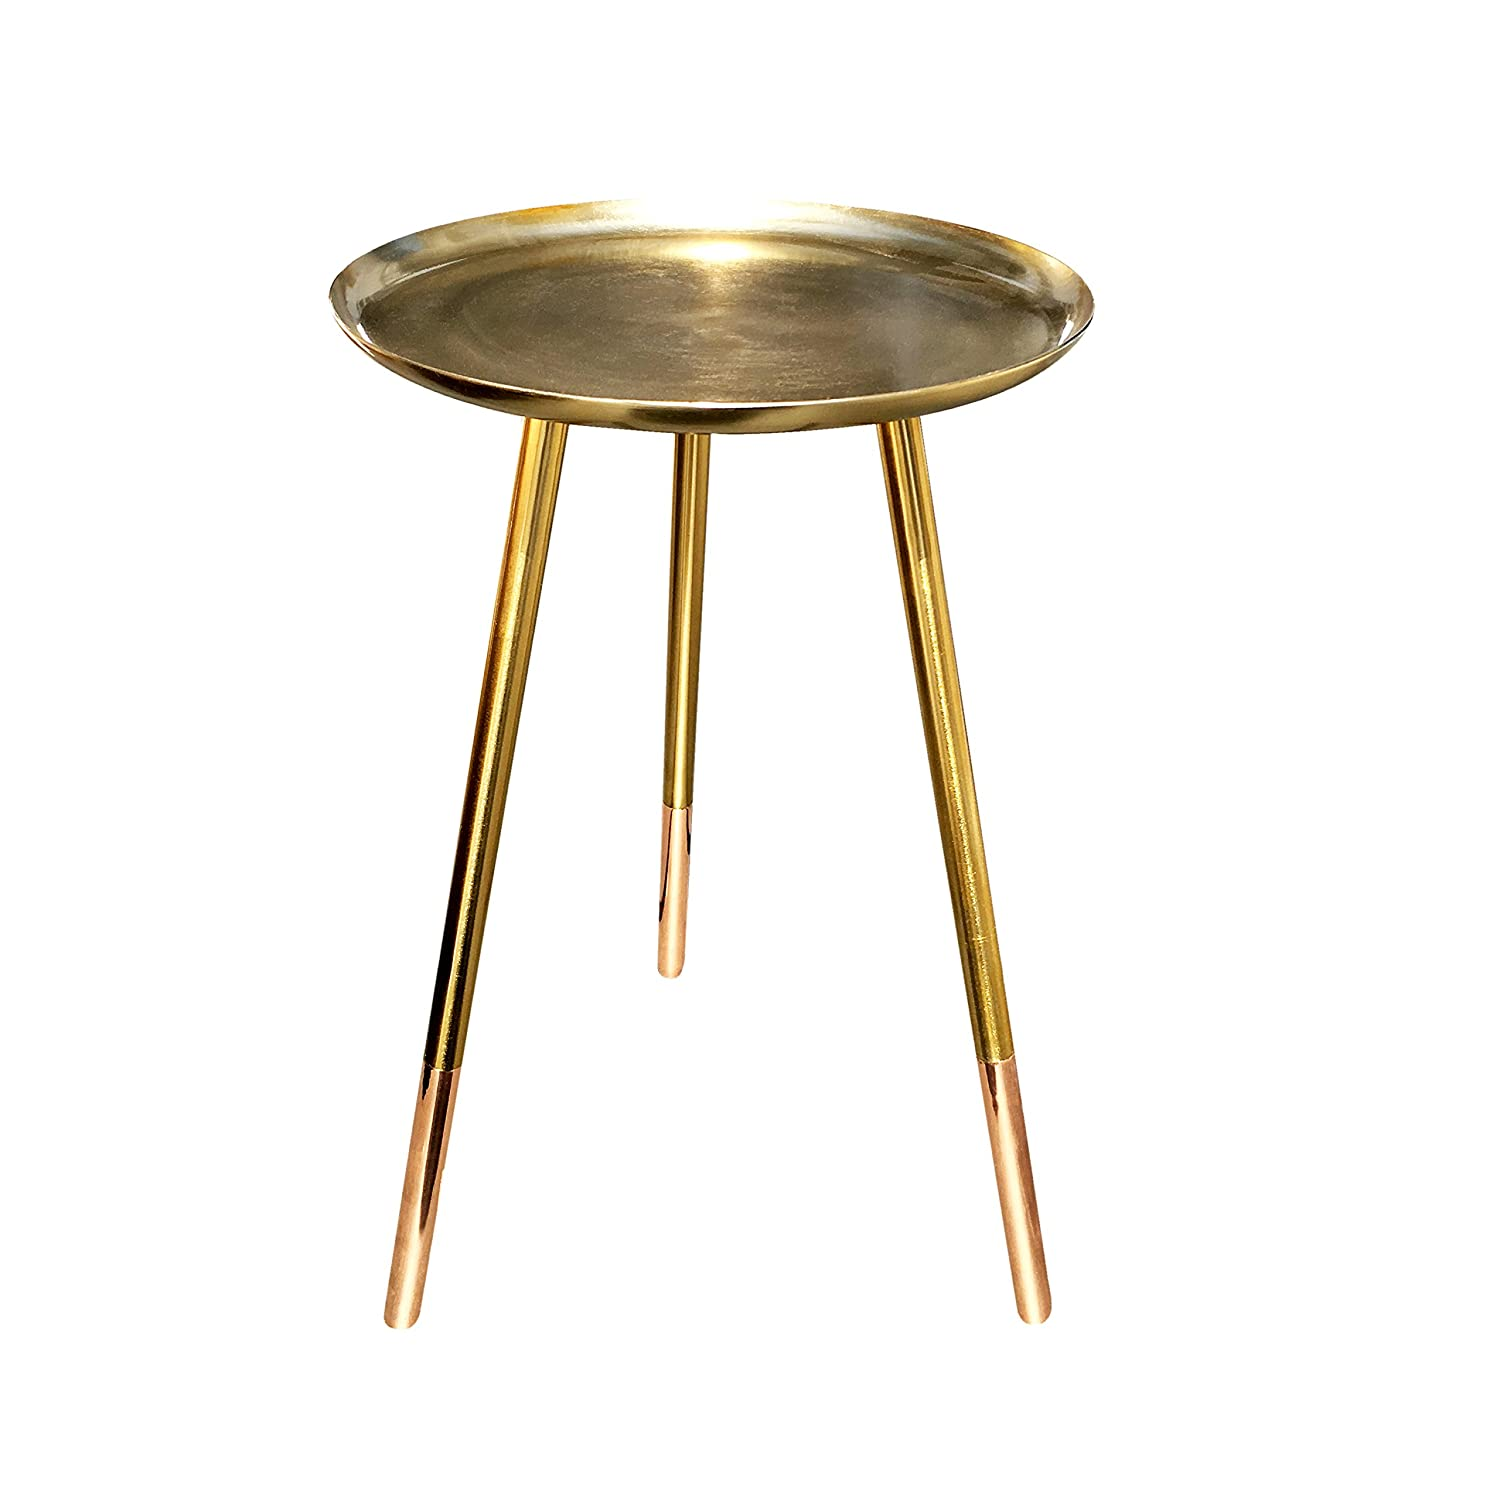 Bombay Duck Round Table with Copper Legs Small Brass Metal 1x31x52 cm